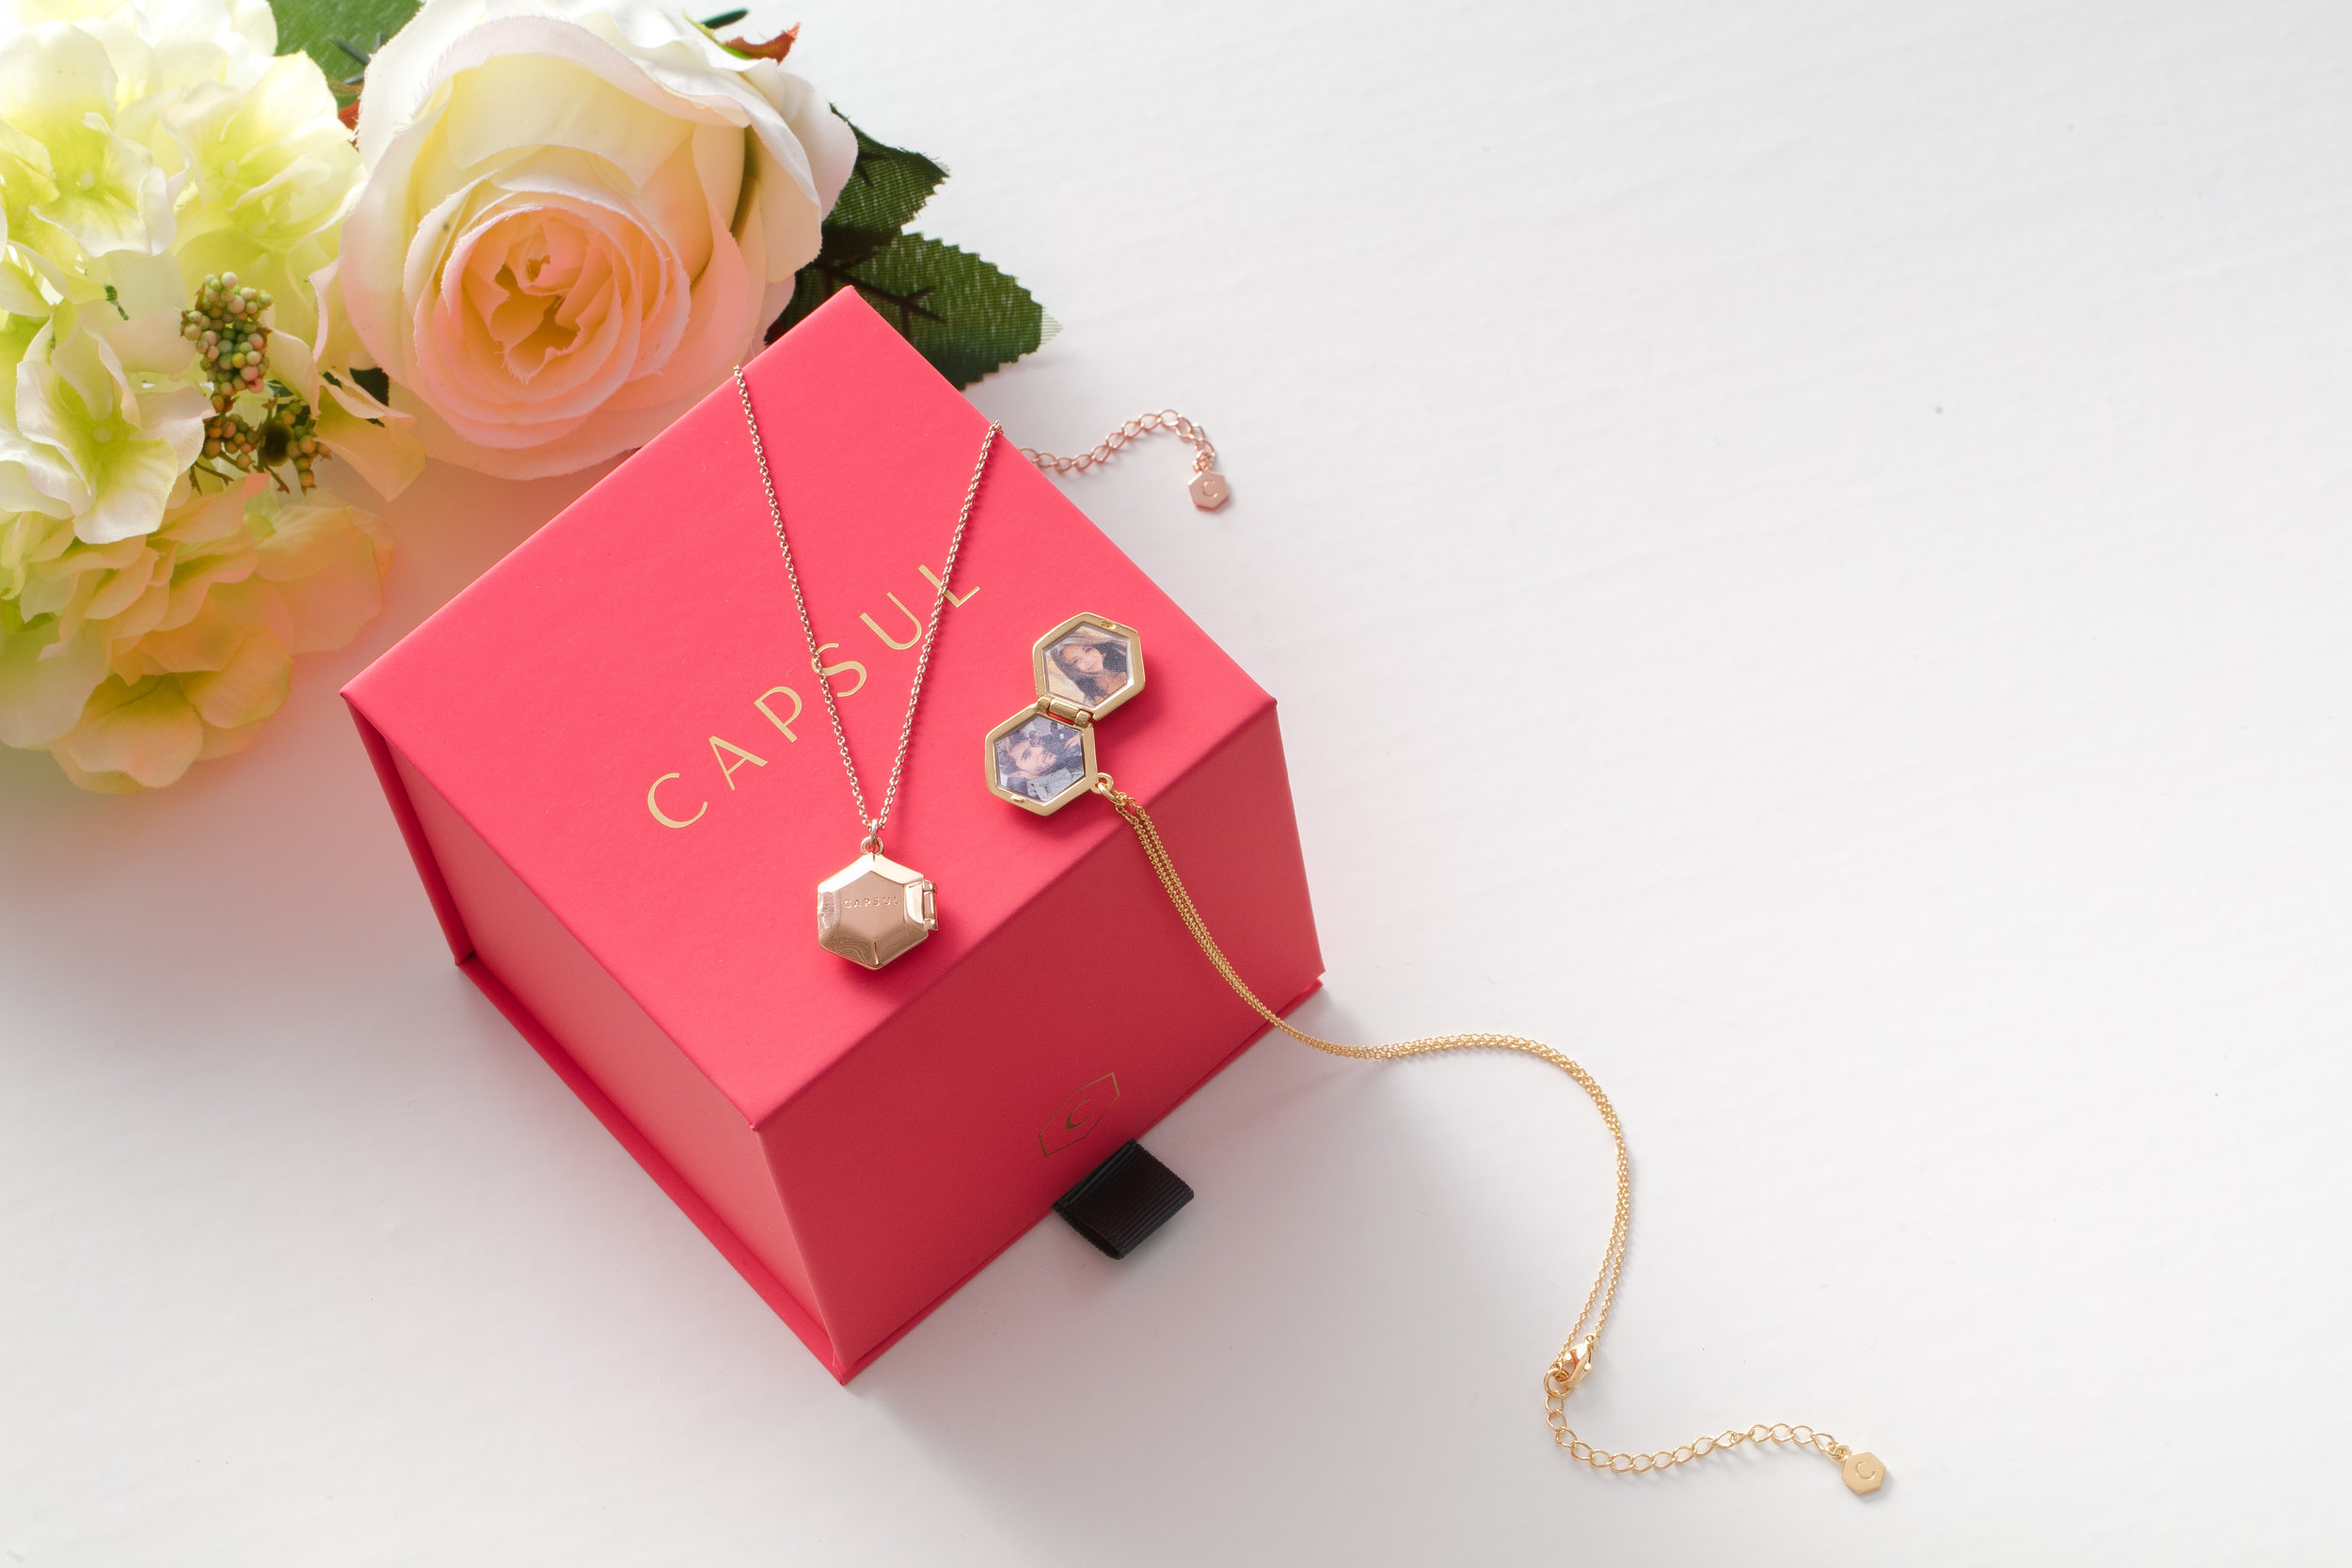 Capsul Locket Necklace: Keep photos of your loved ones close with the vintage locket made modern. We love these for couples who do long distance. They also make a great gift for new moms!